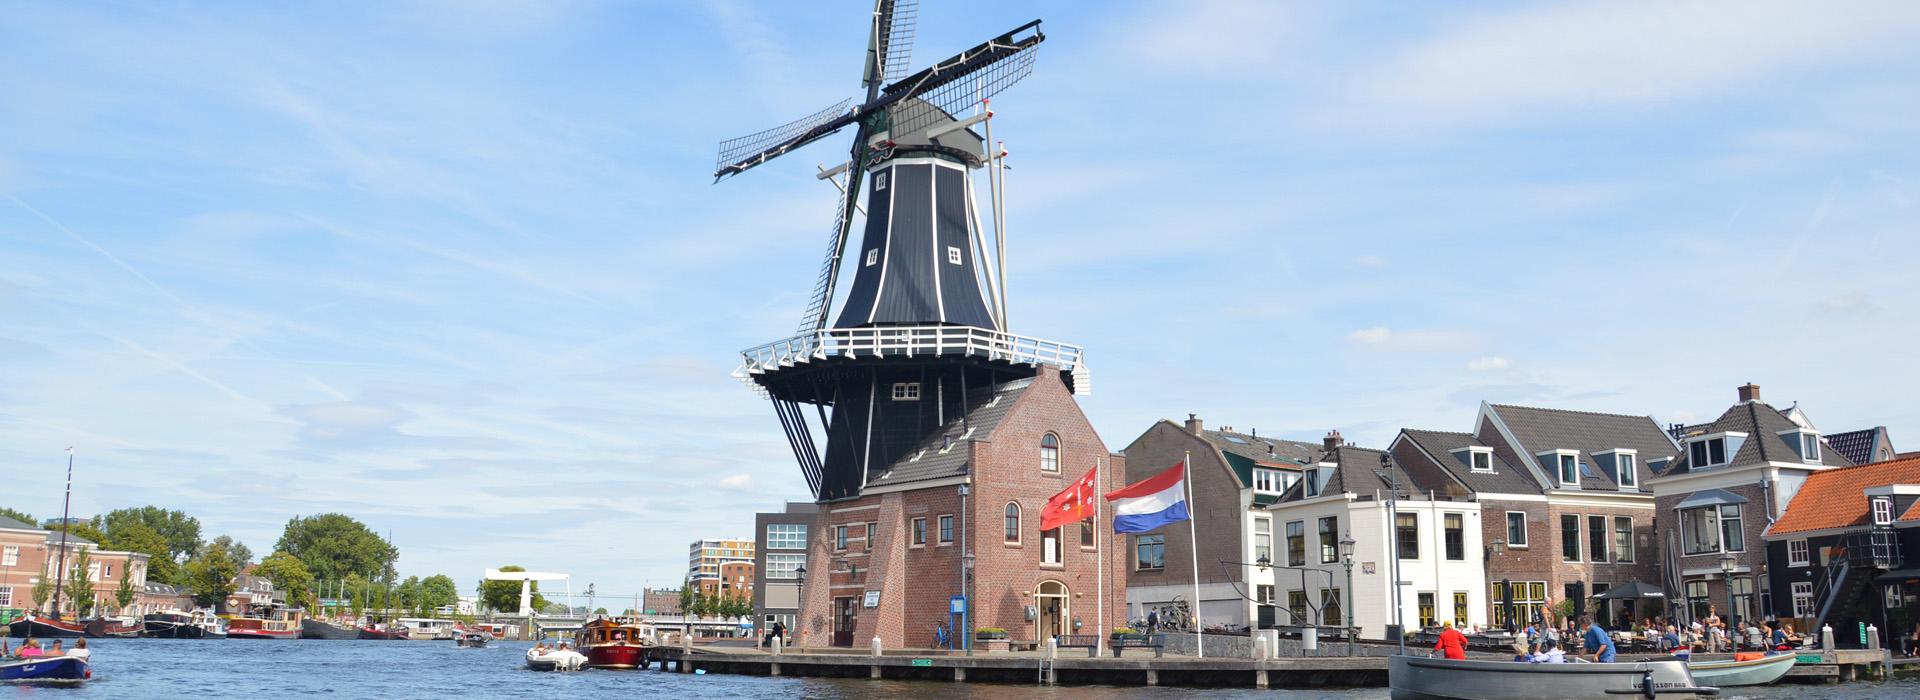 dutch windmill by the river in haarlem